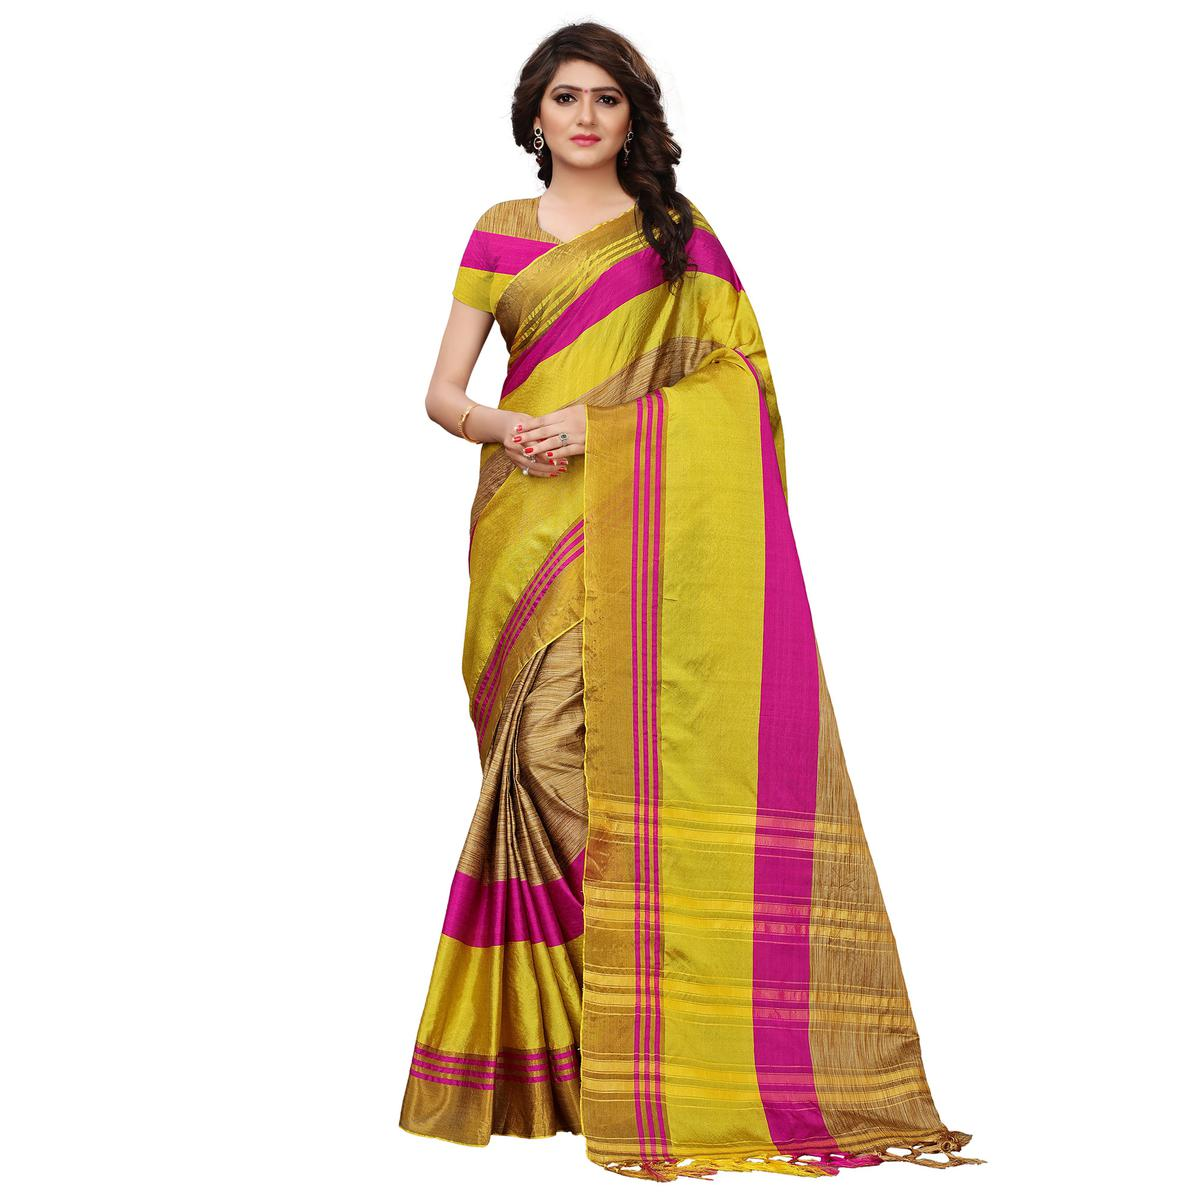 Flirty Chikoo-Yellow Colored Festive Wear Tussar Silk Saree